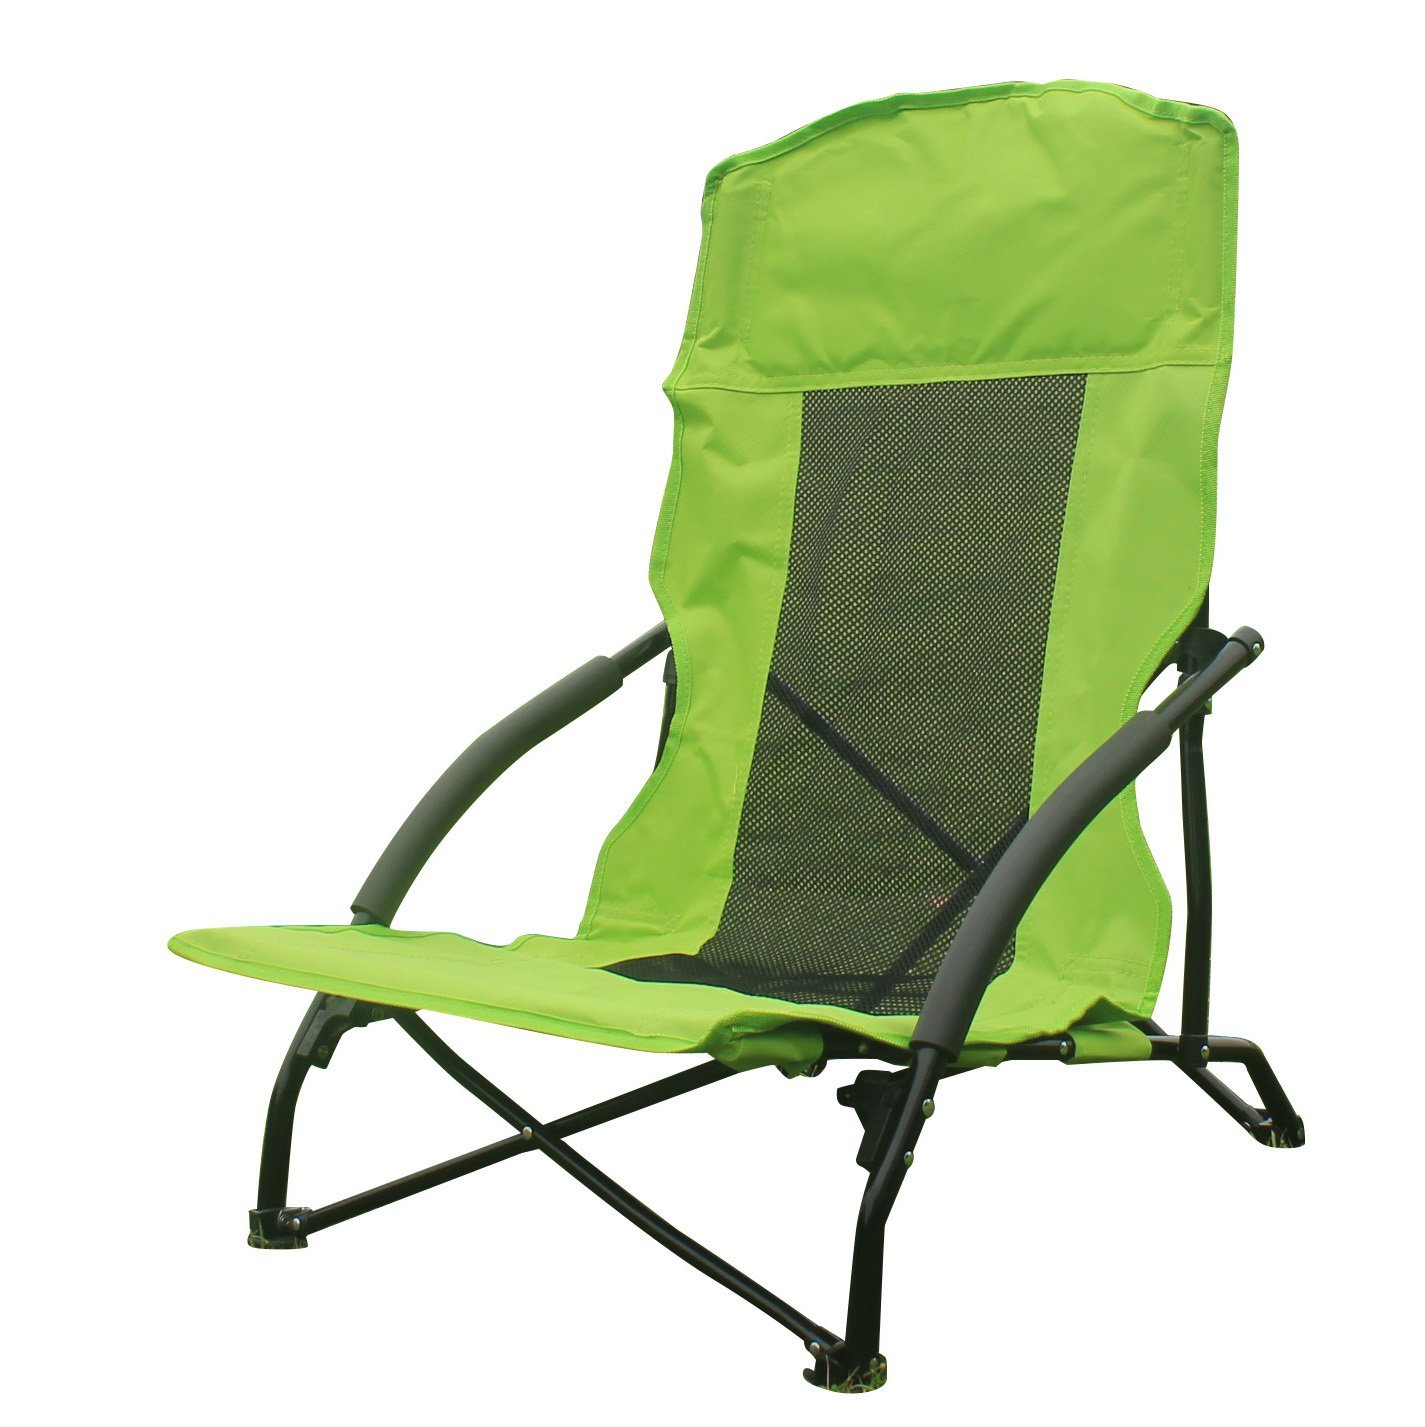 Captivating Amazon.com : Funs Portable Heavy Duty Folding Chair, Compact In A Bag. Best  For Outdoor Camping Hiking Beach Activities (Green) : Sports U0026 Outdoors